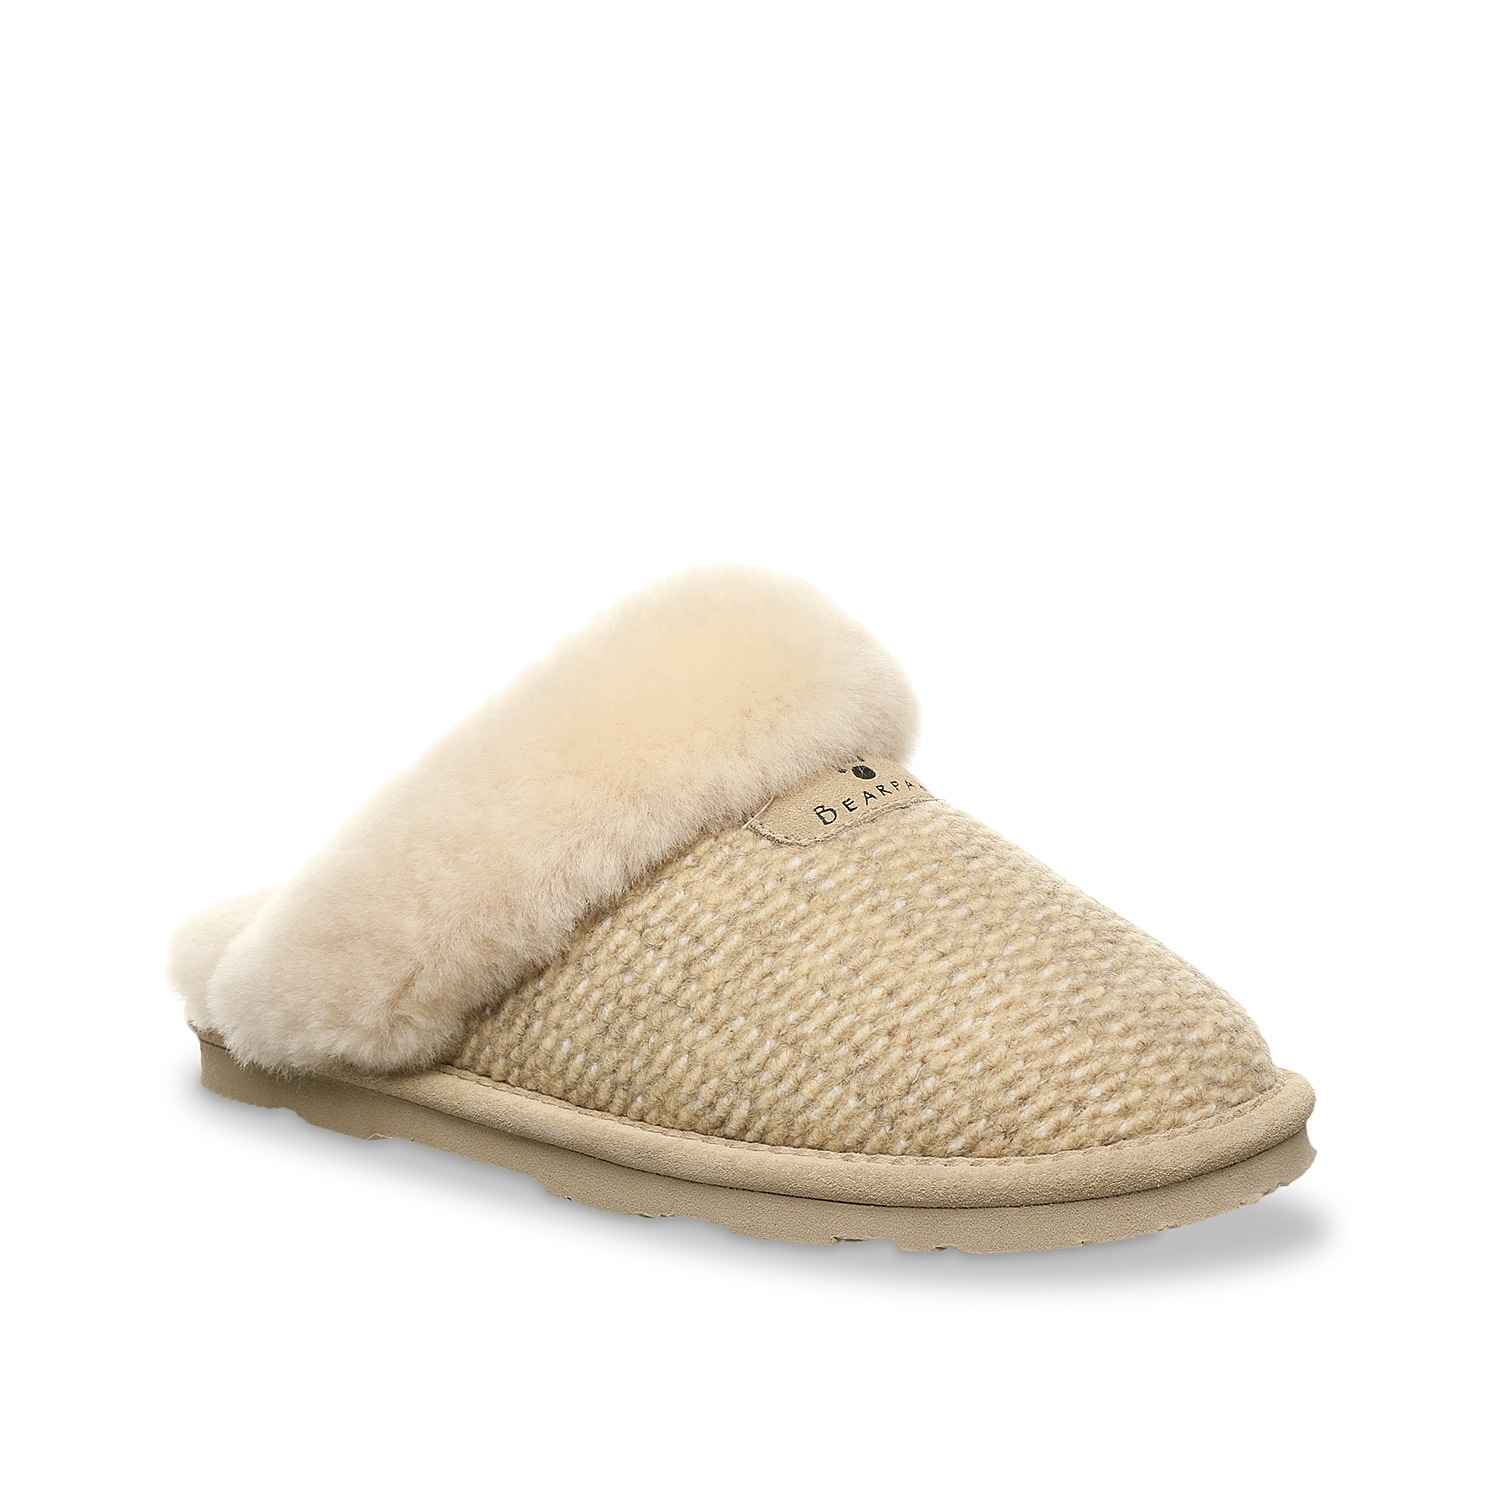 Get the cute factor in no time donning the Bearpaw Effie scuff slipper. Beautifully knit upper is complemented by a shearling collar, lining and footbed for pampering comfort.